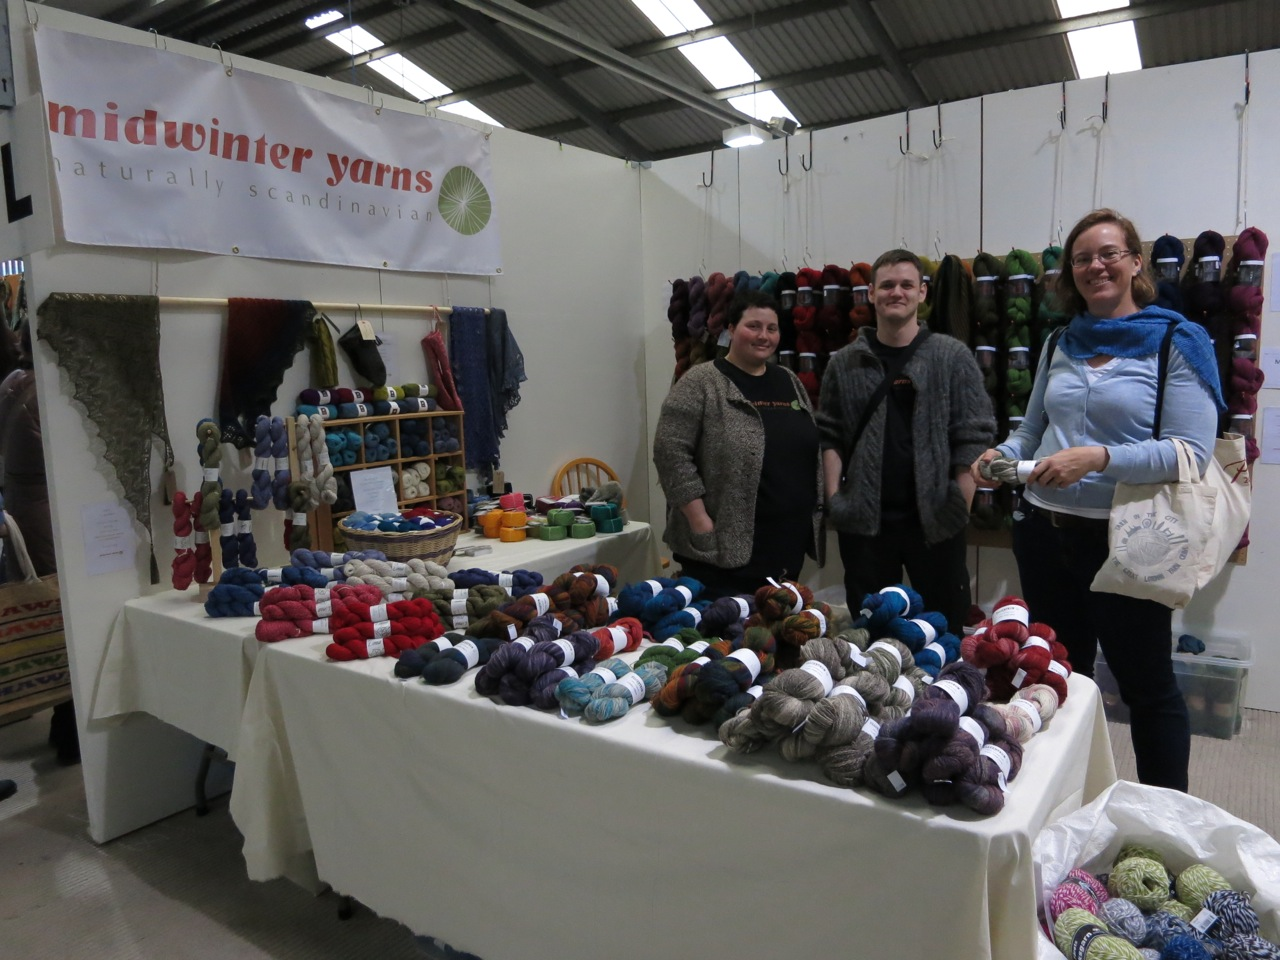 We made new friends at the new  Midwinter Yarns .